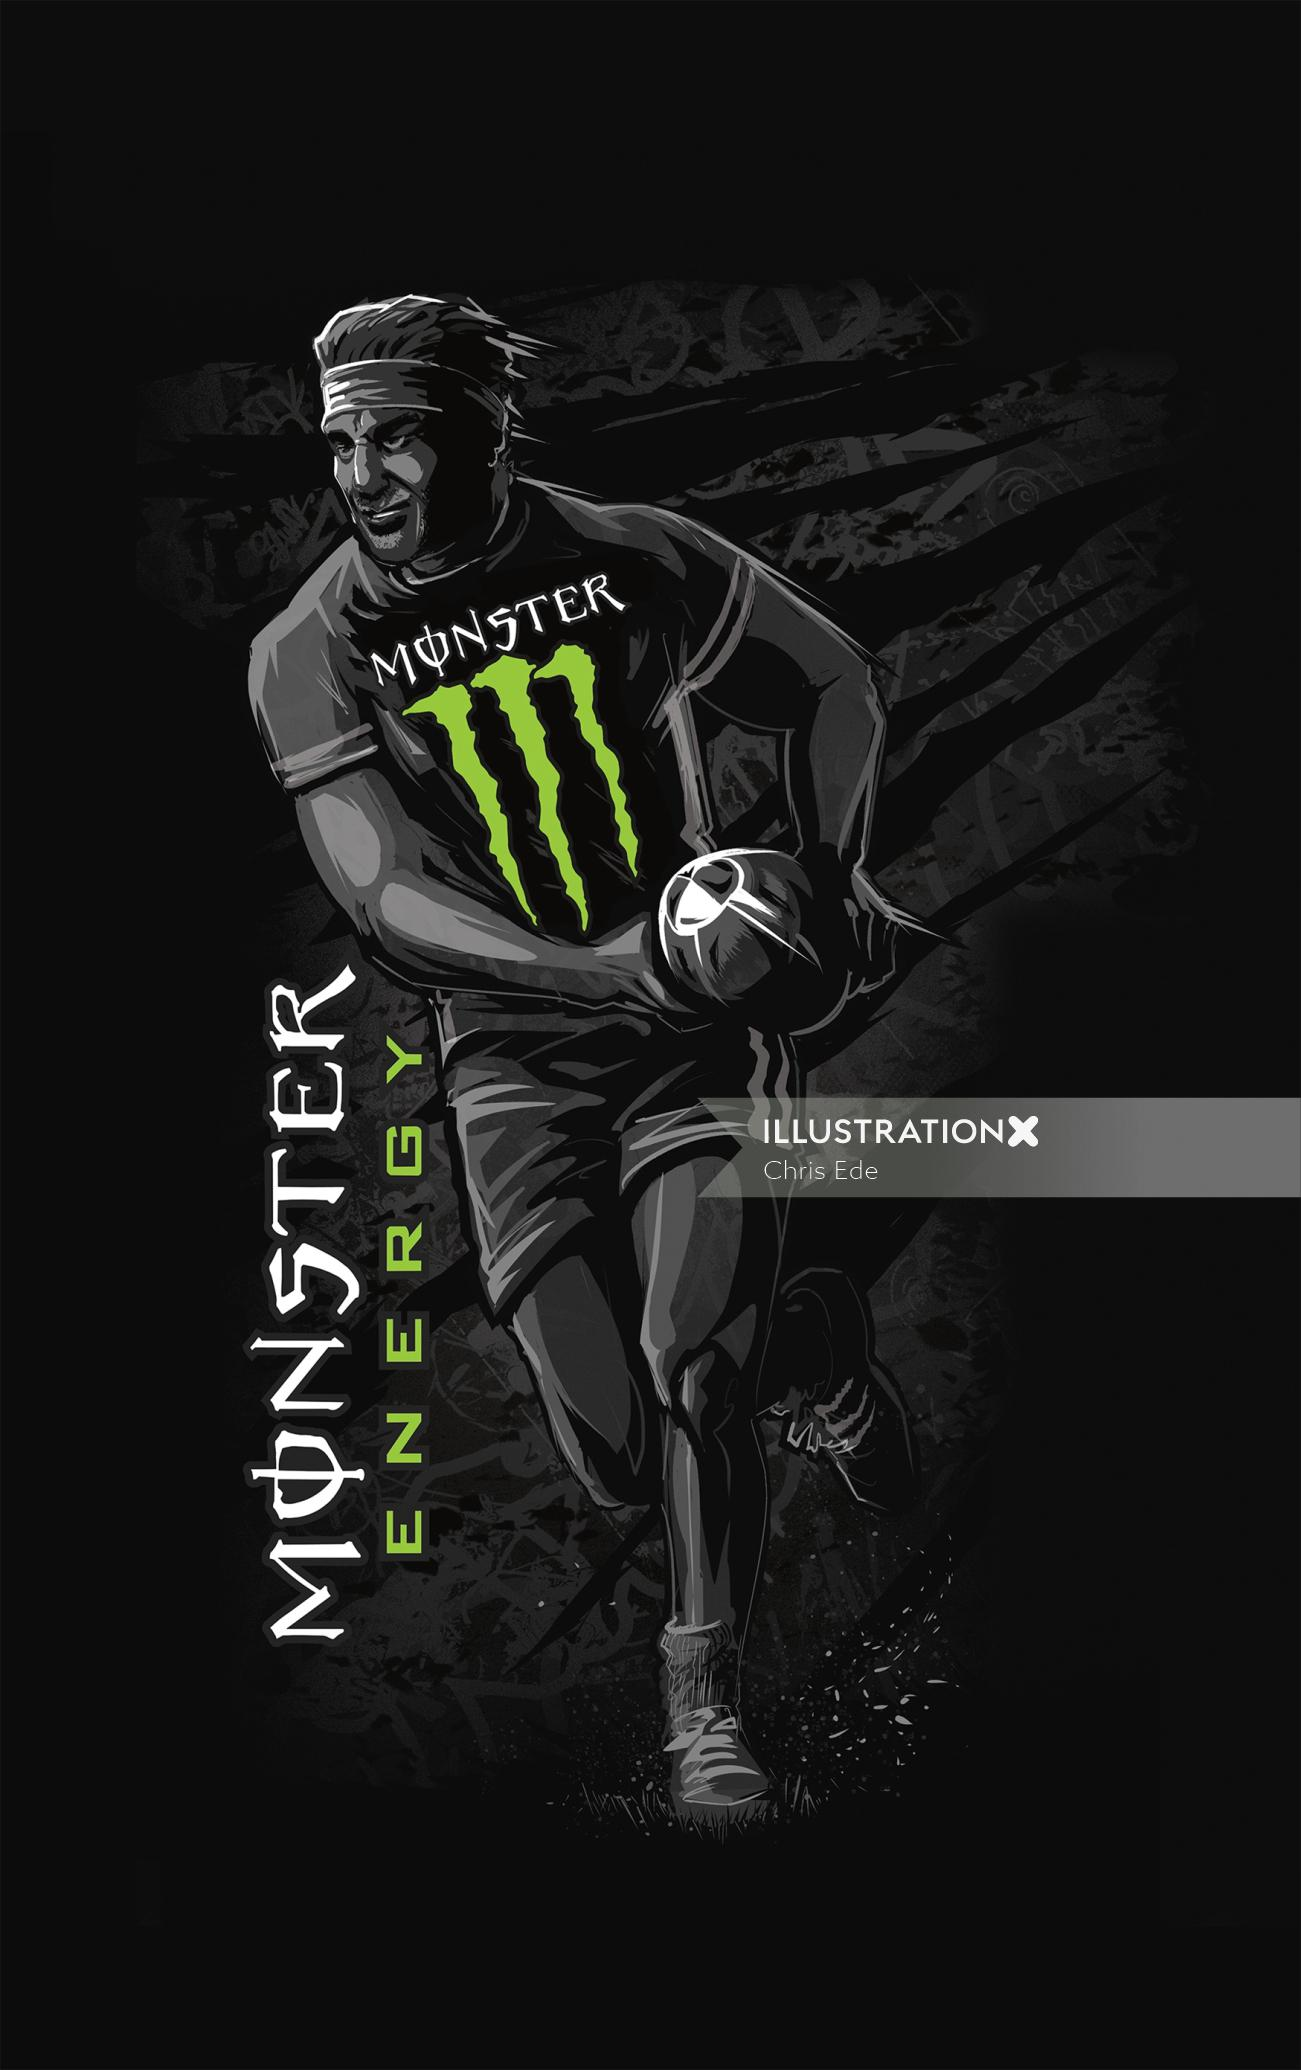 Monster energy sports can rugby player